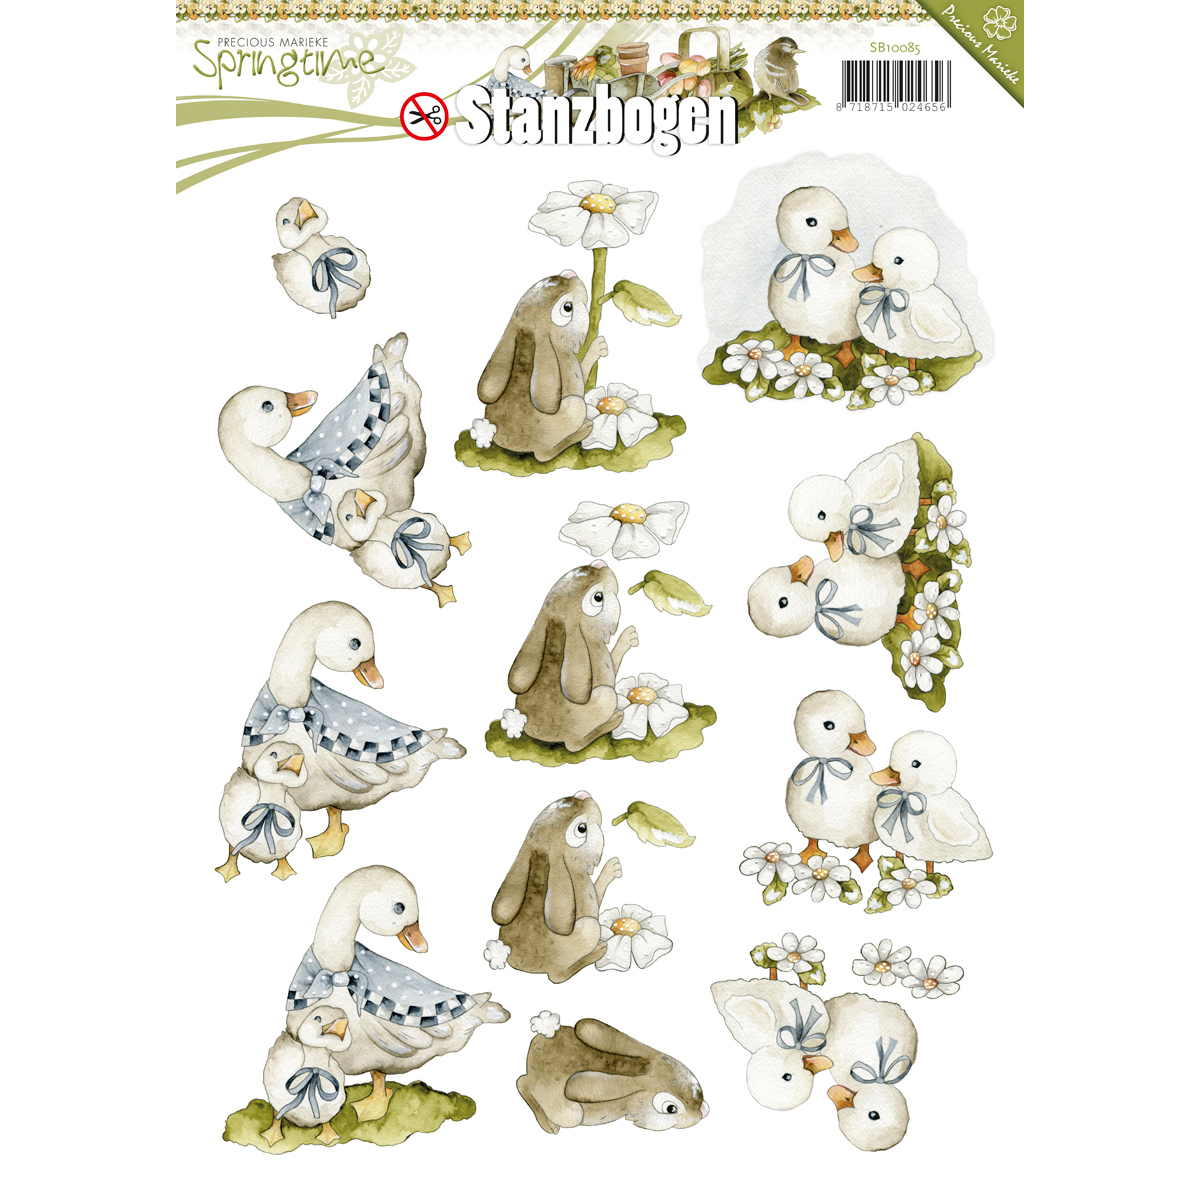 Find It Precious Marieke Springtime Punchout Sheet-Goose, Bunny & Duck